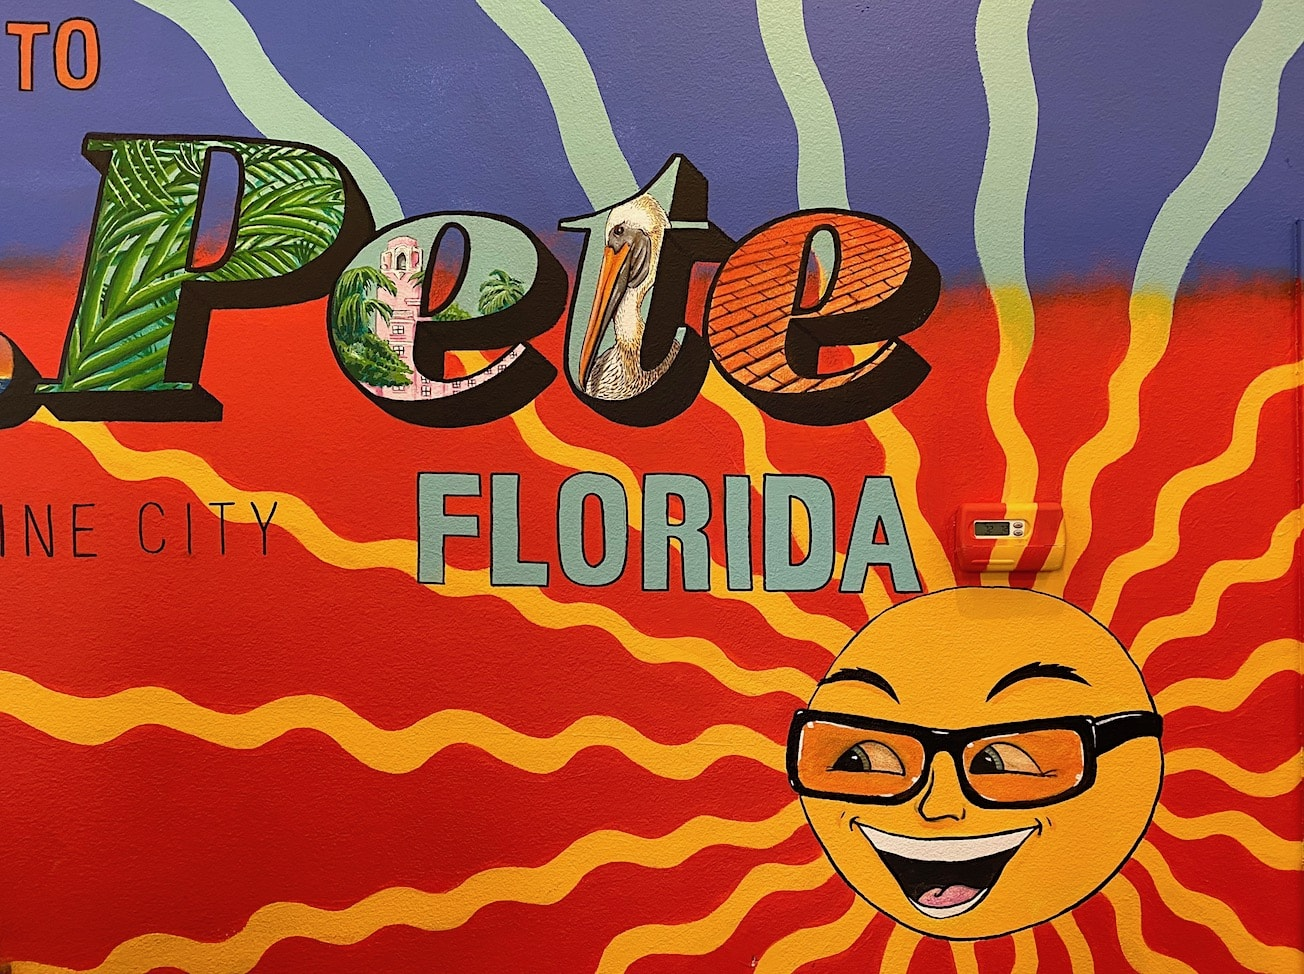 Welcome to St. Pete